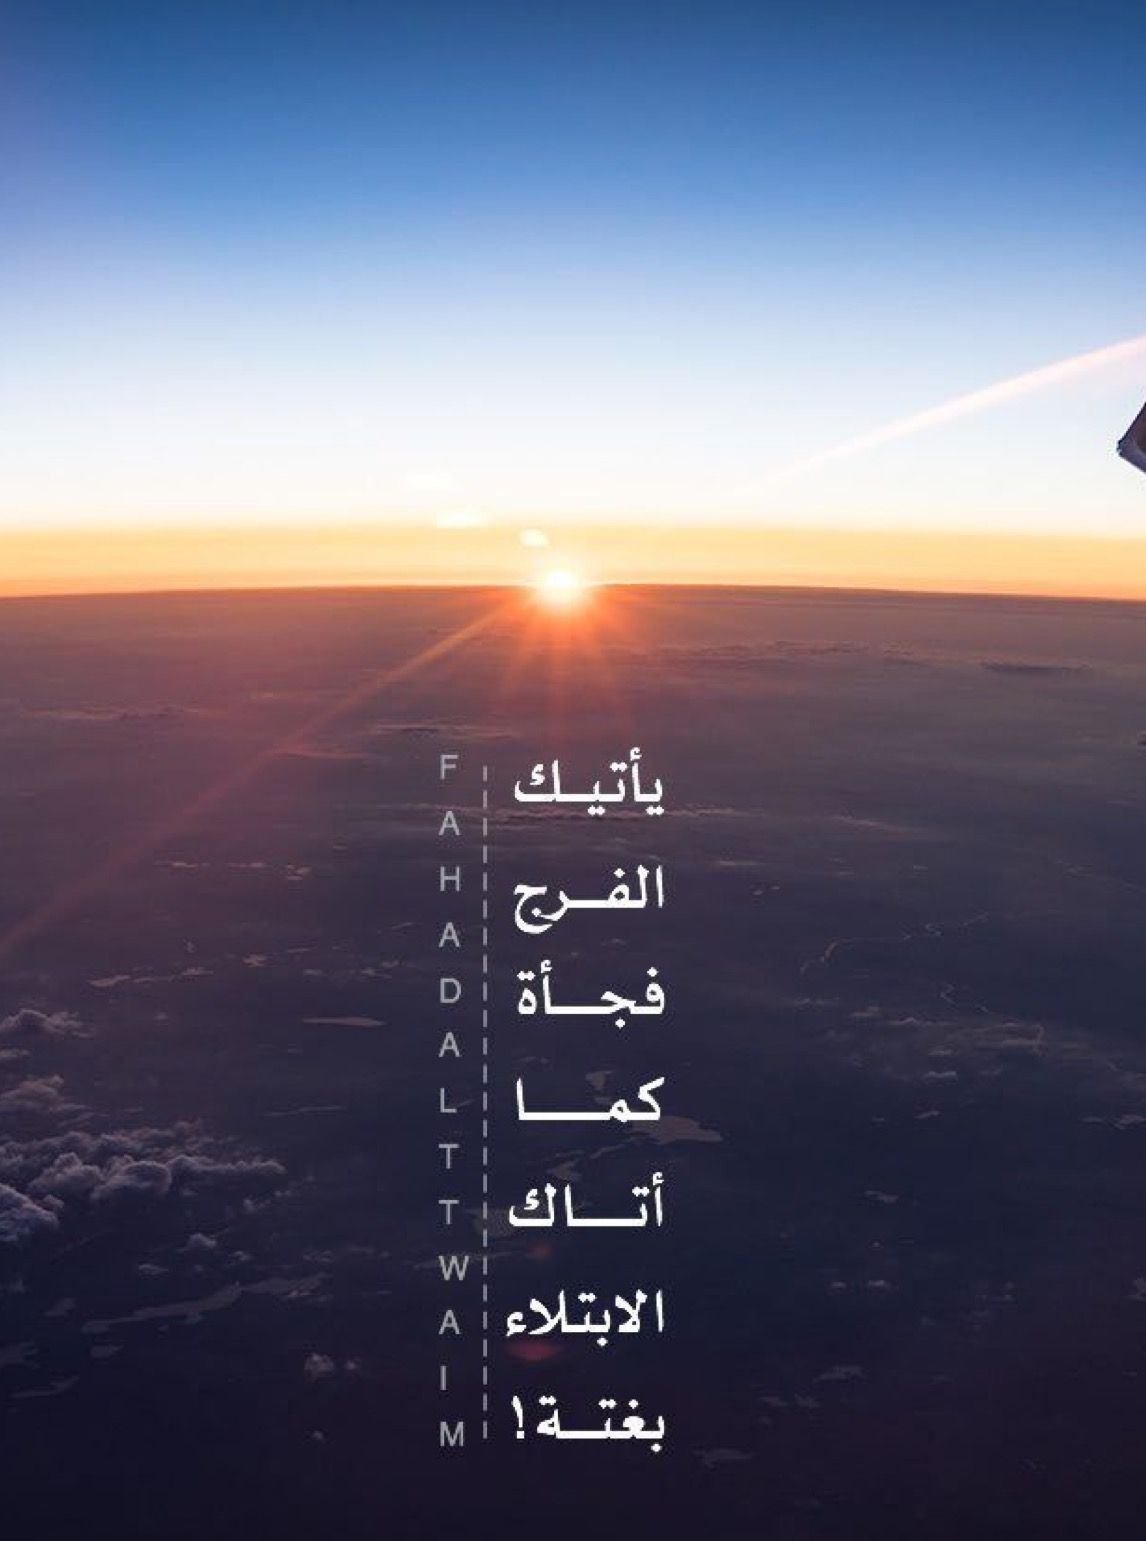 Pin By Heba Hathout On Arabic Quotes And Quranic Verses Arabic Quotes Cool Words Photo Quotes